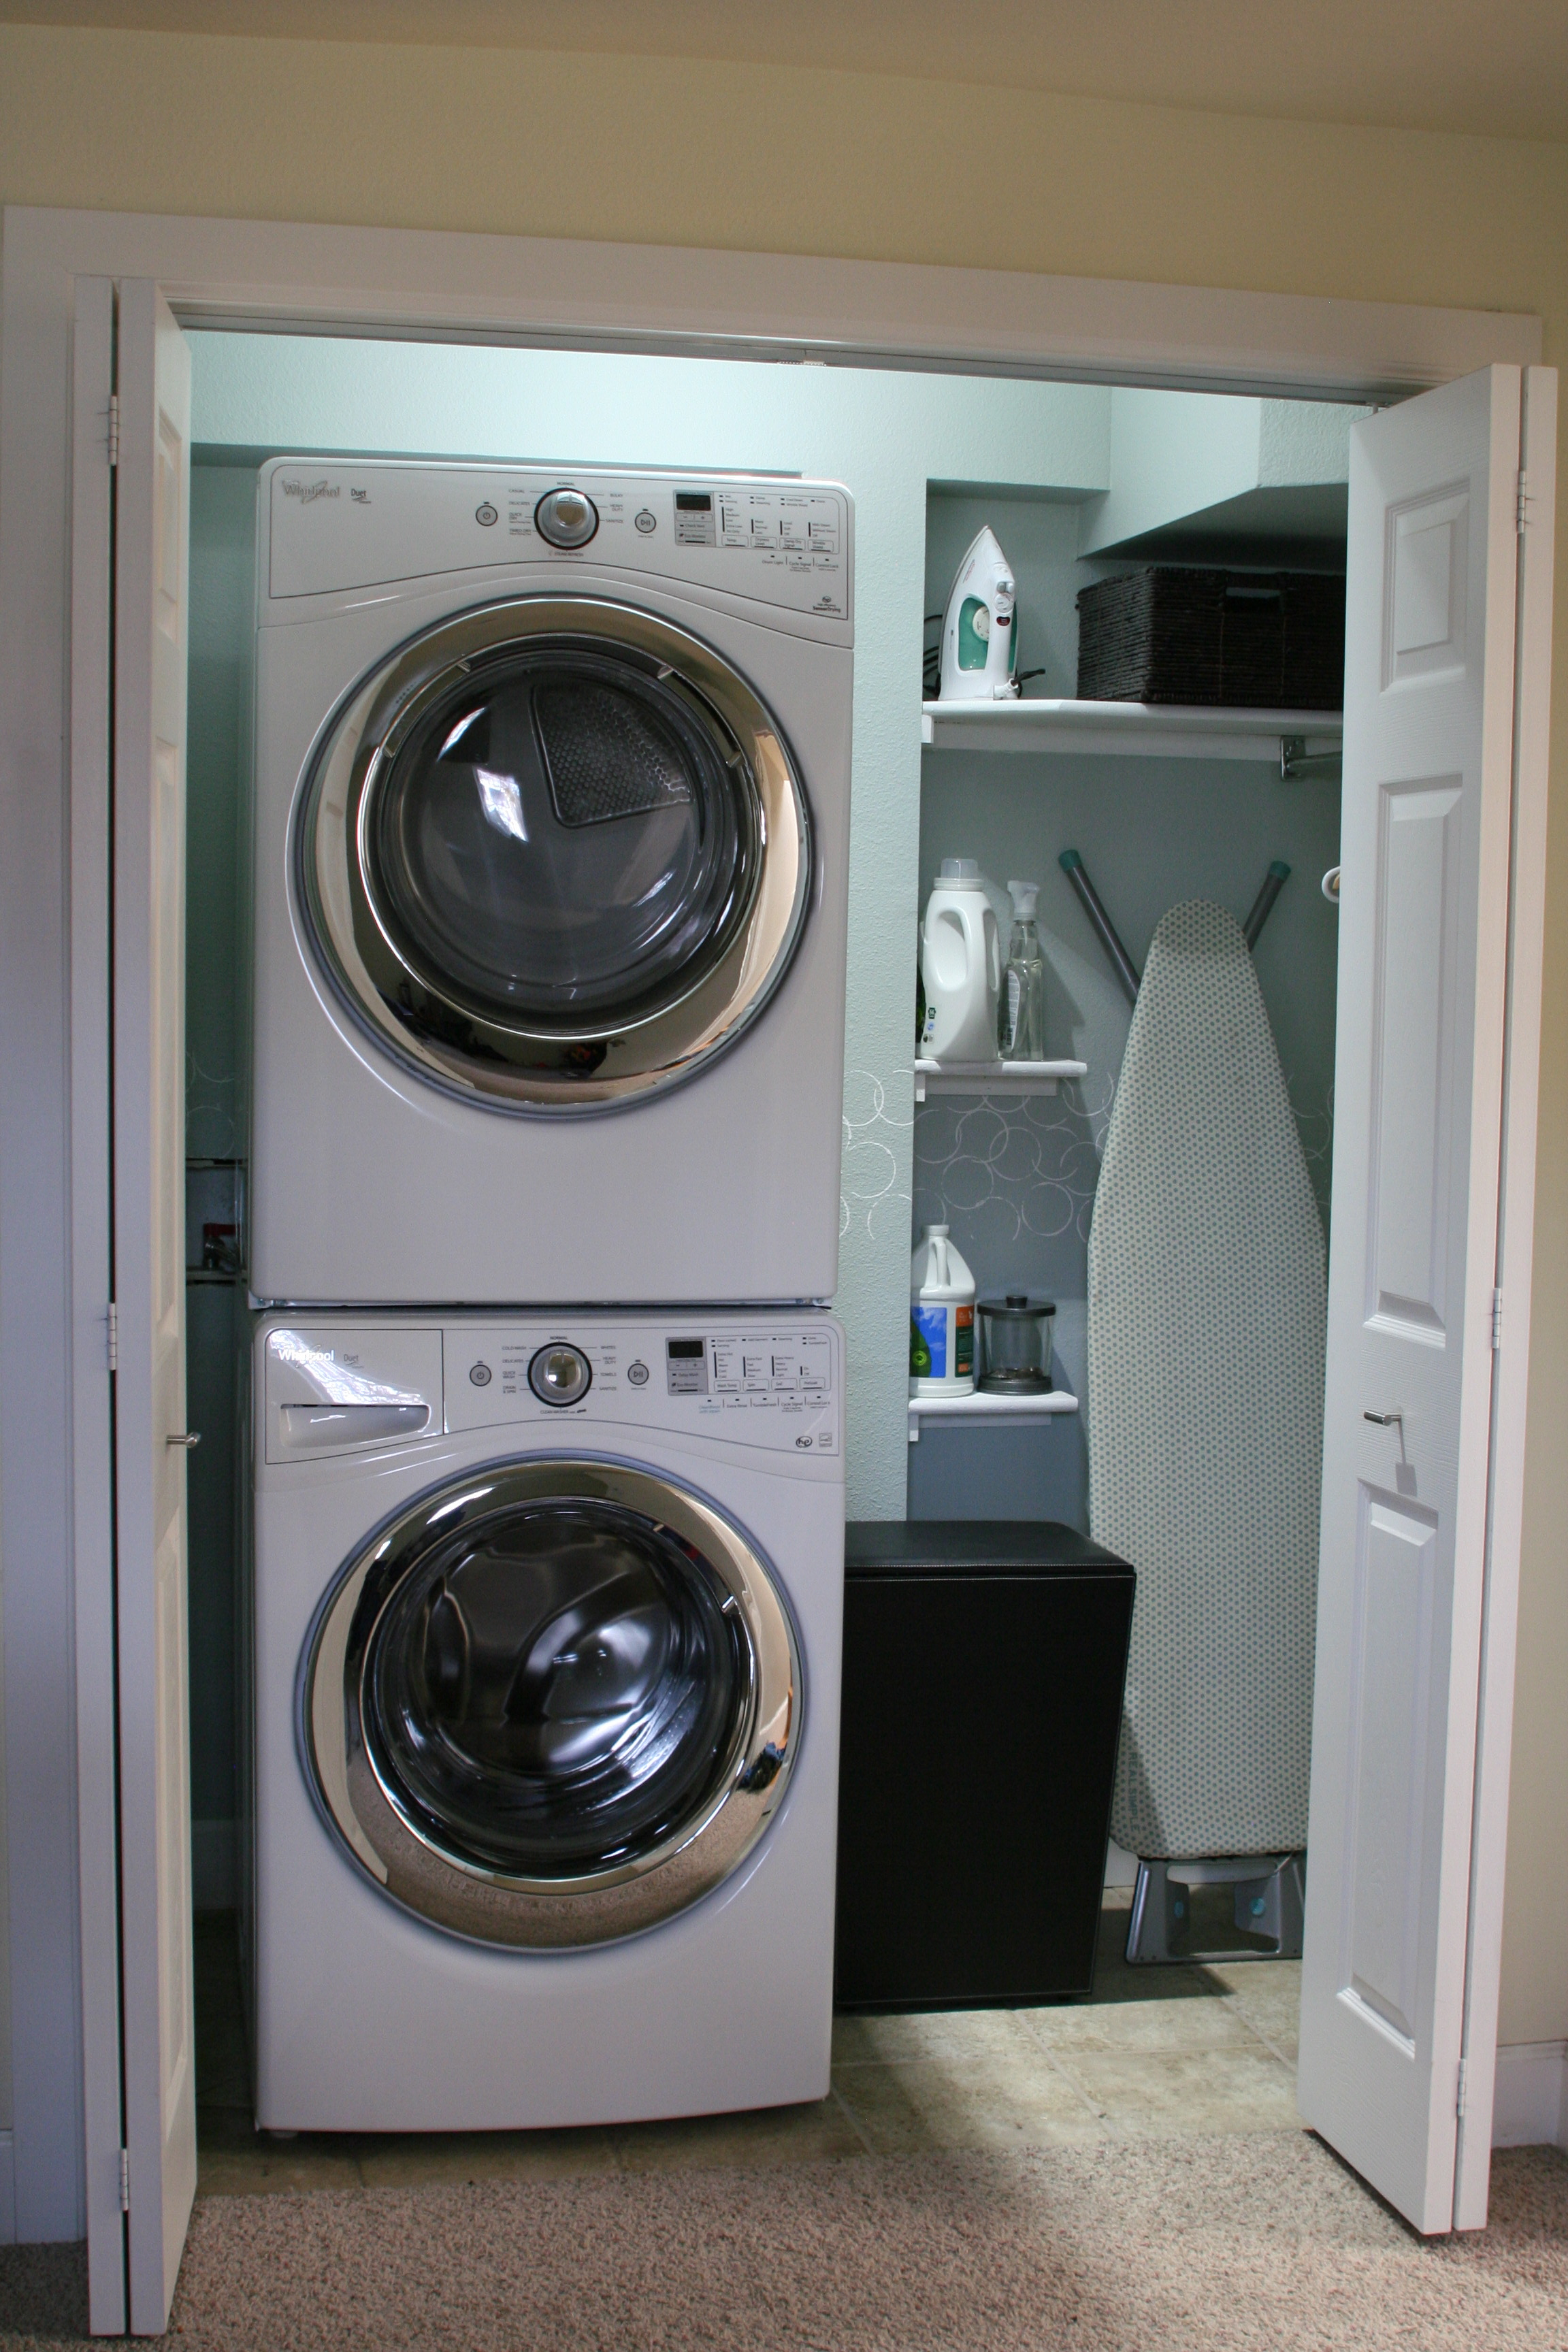 5 Ways to Revamp a Laundry Room on a Bud Jenna Burger